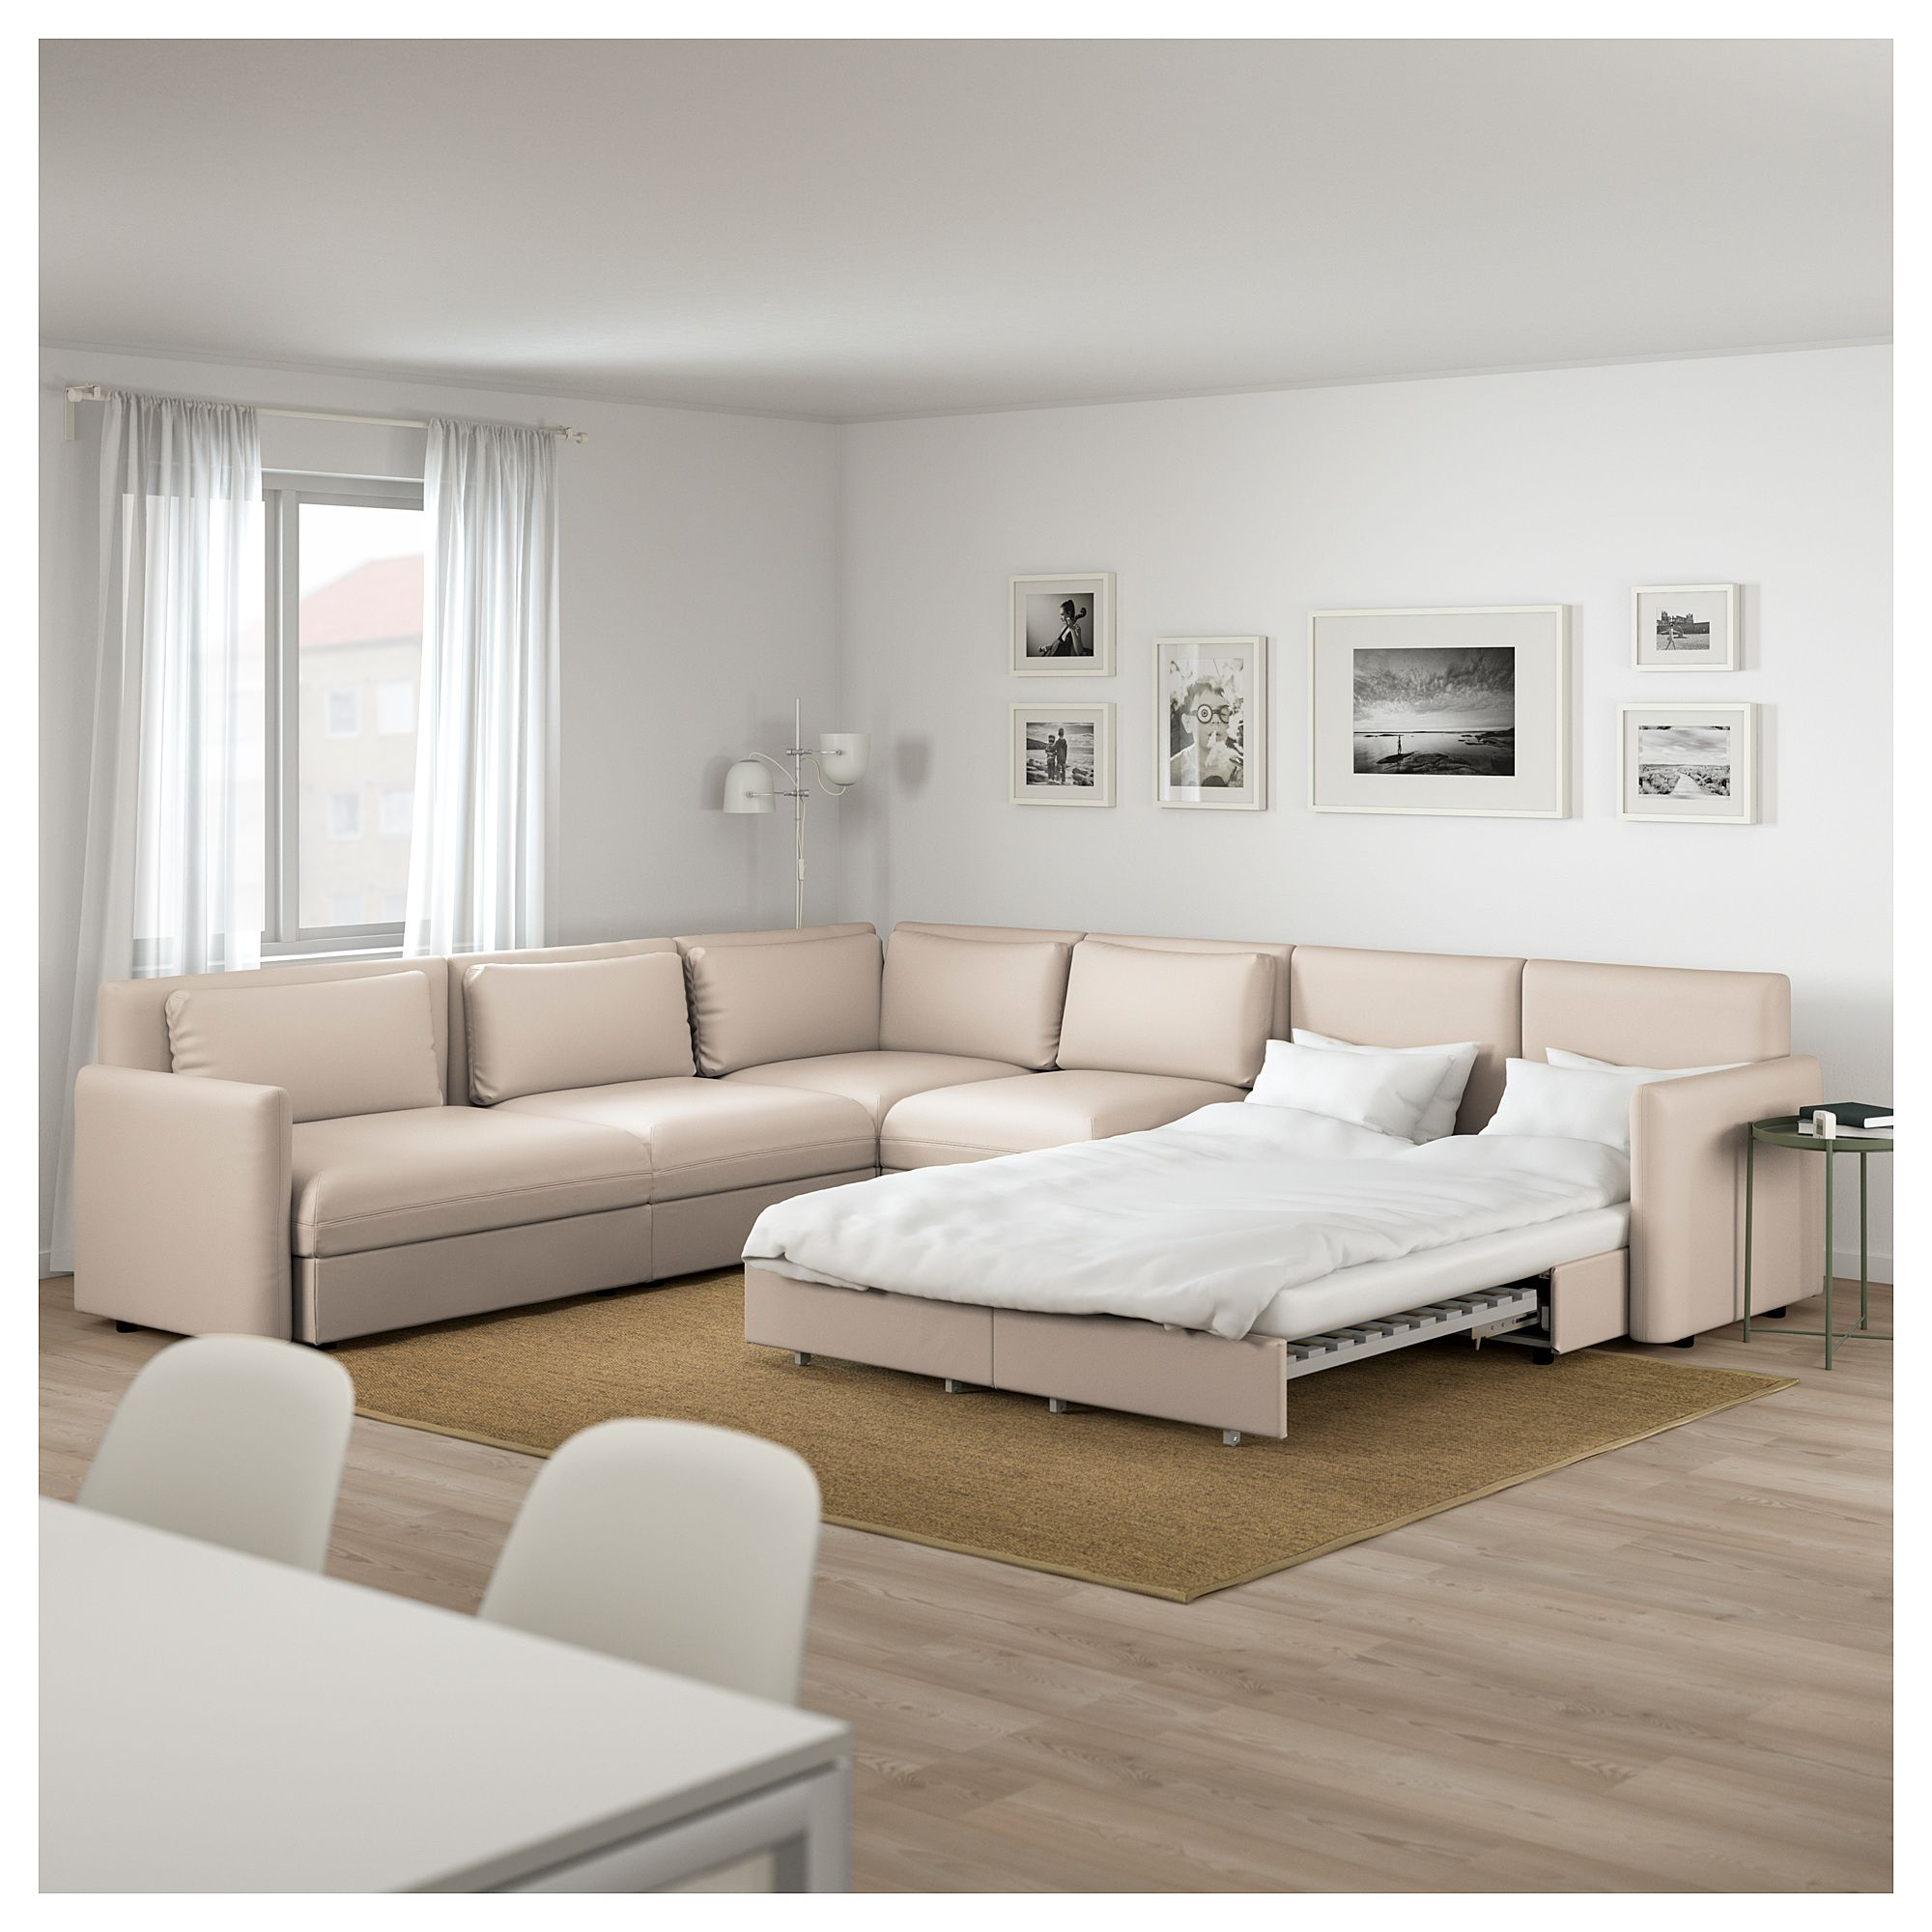 Furniture & Home Furnishings - Find Your Inspiration | Ecksofa design, Möbelideen, Sofa design